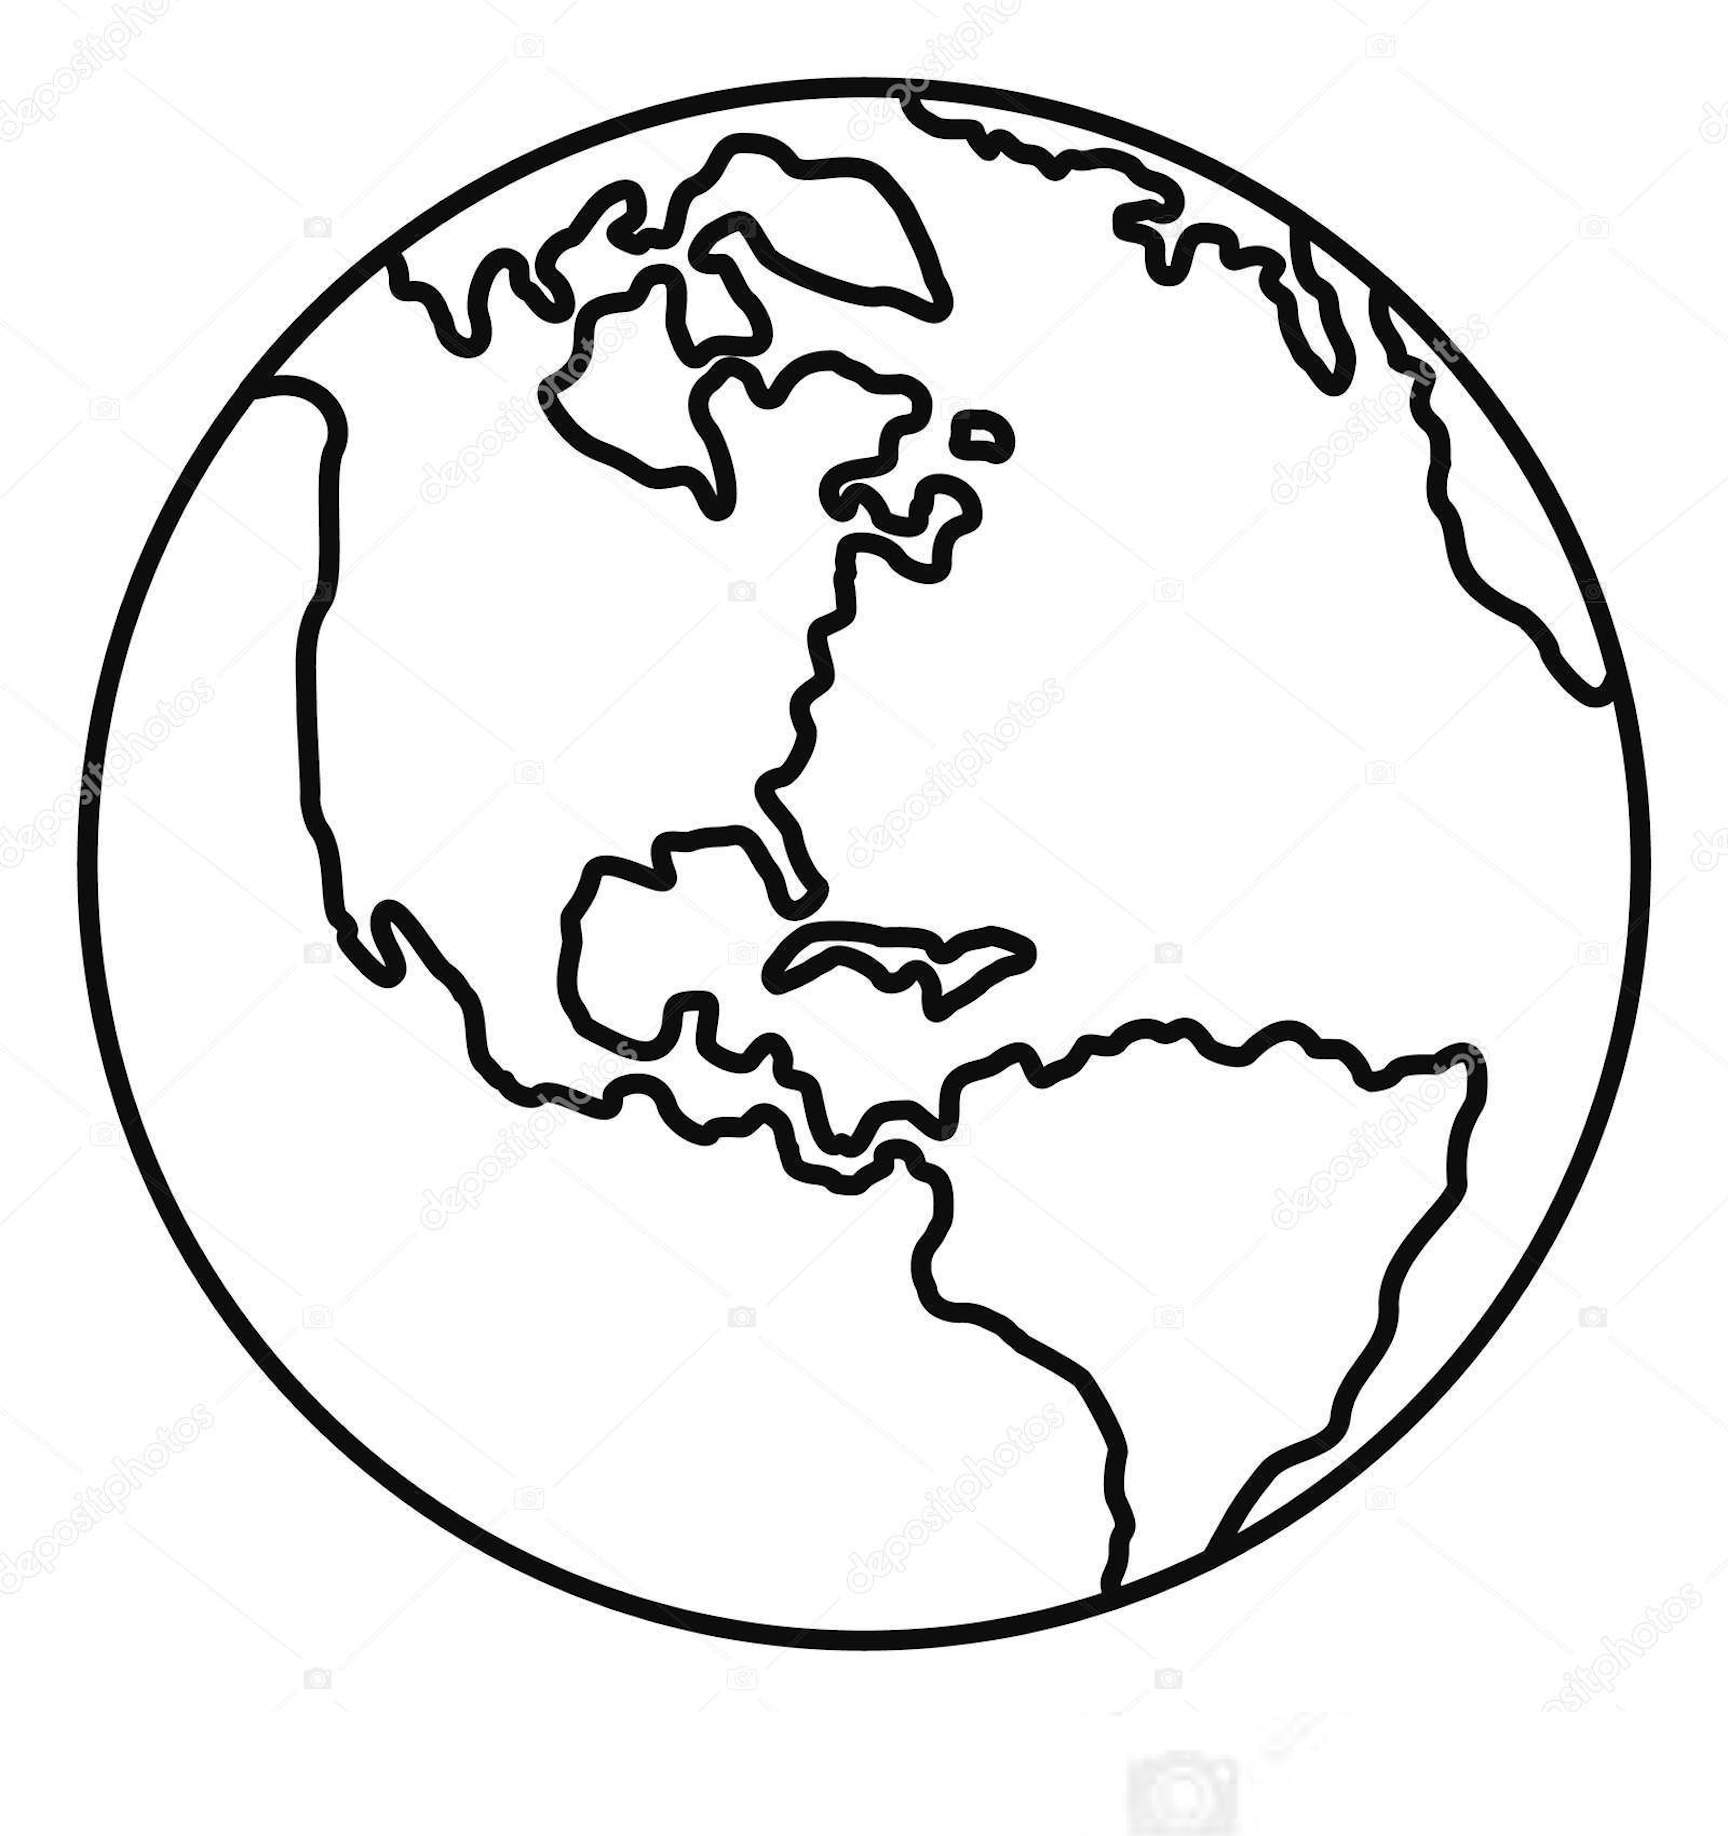 planet earth coloring page escape from planet earth coloring pages coloring home coloring page planet earth